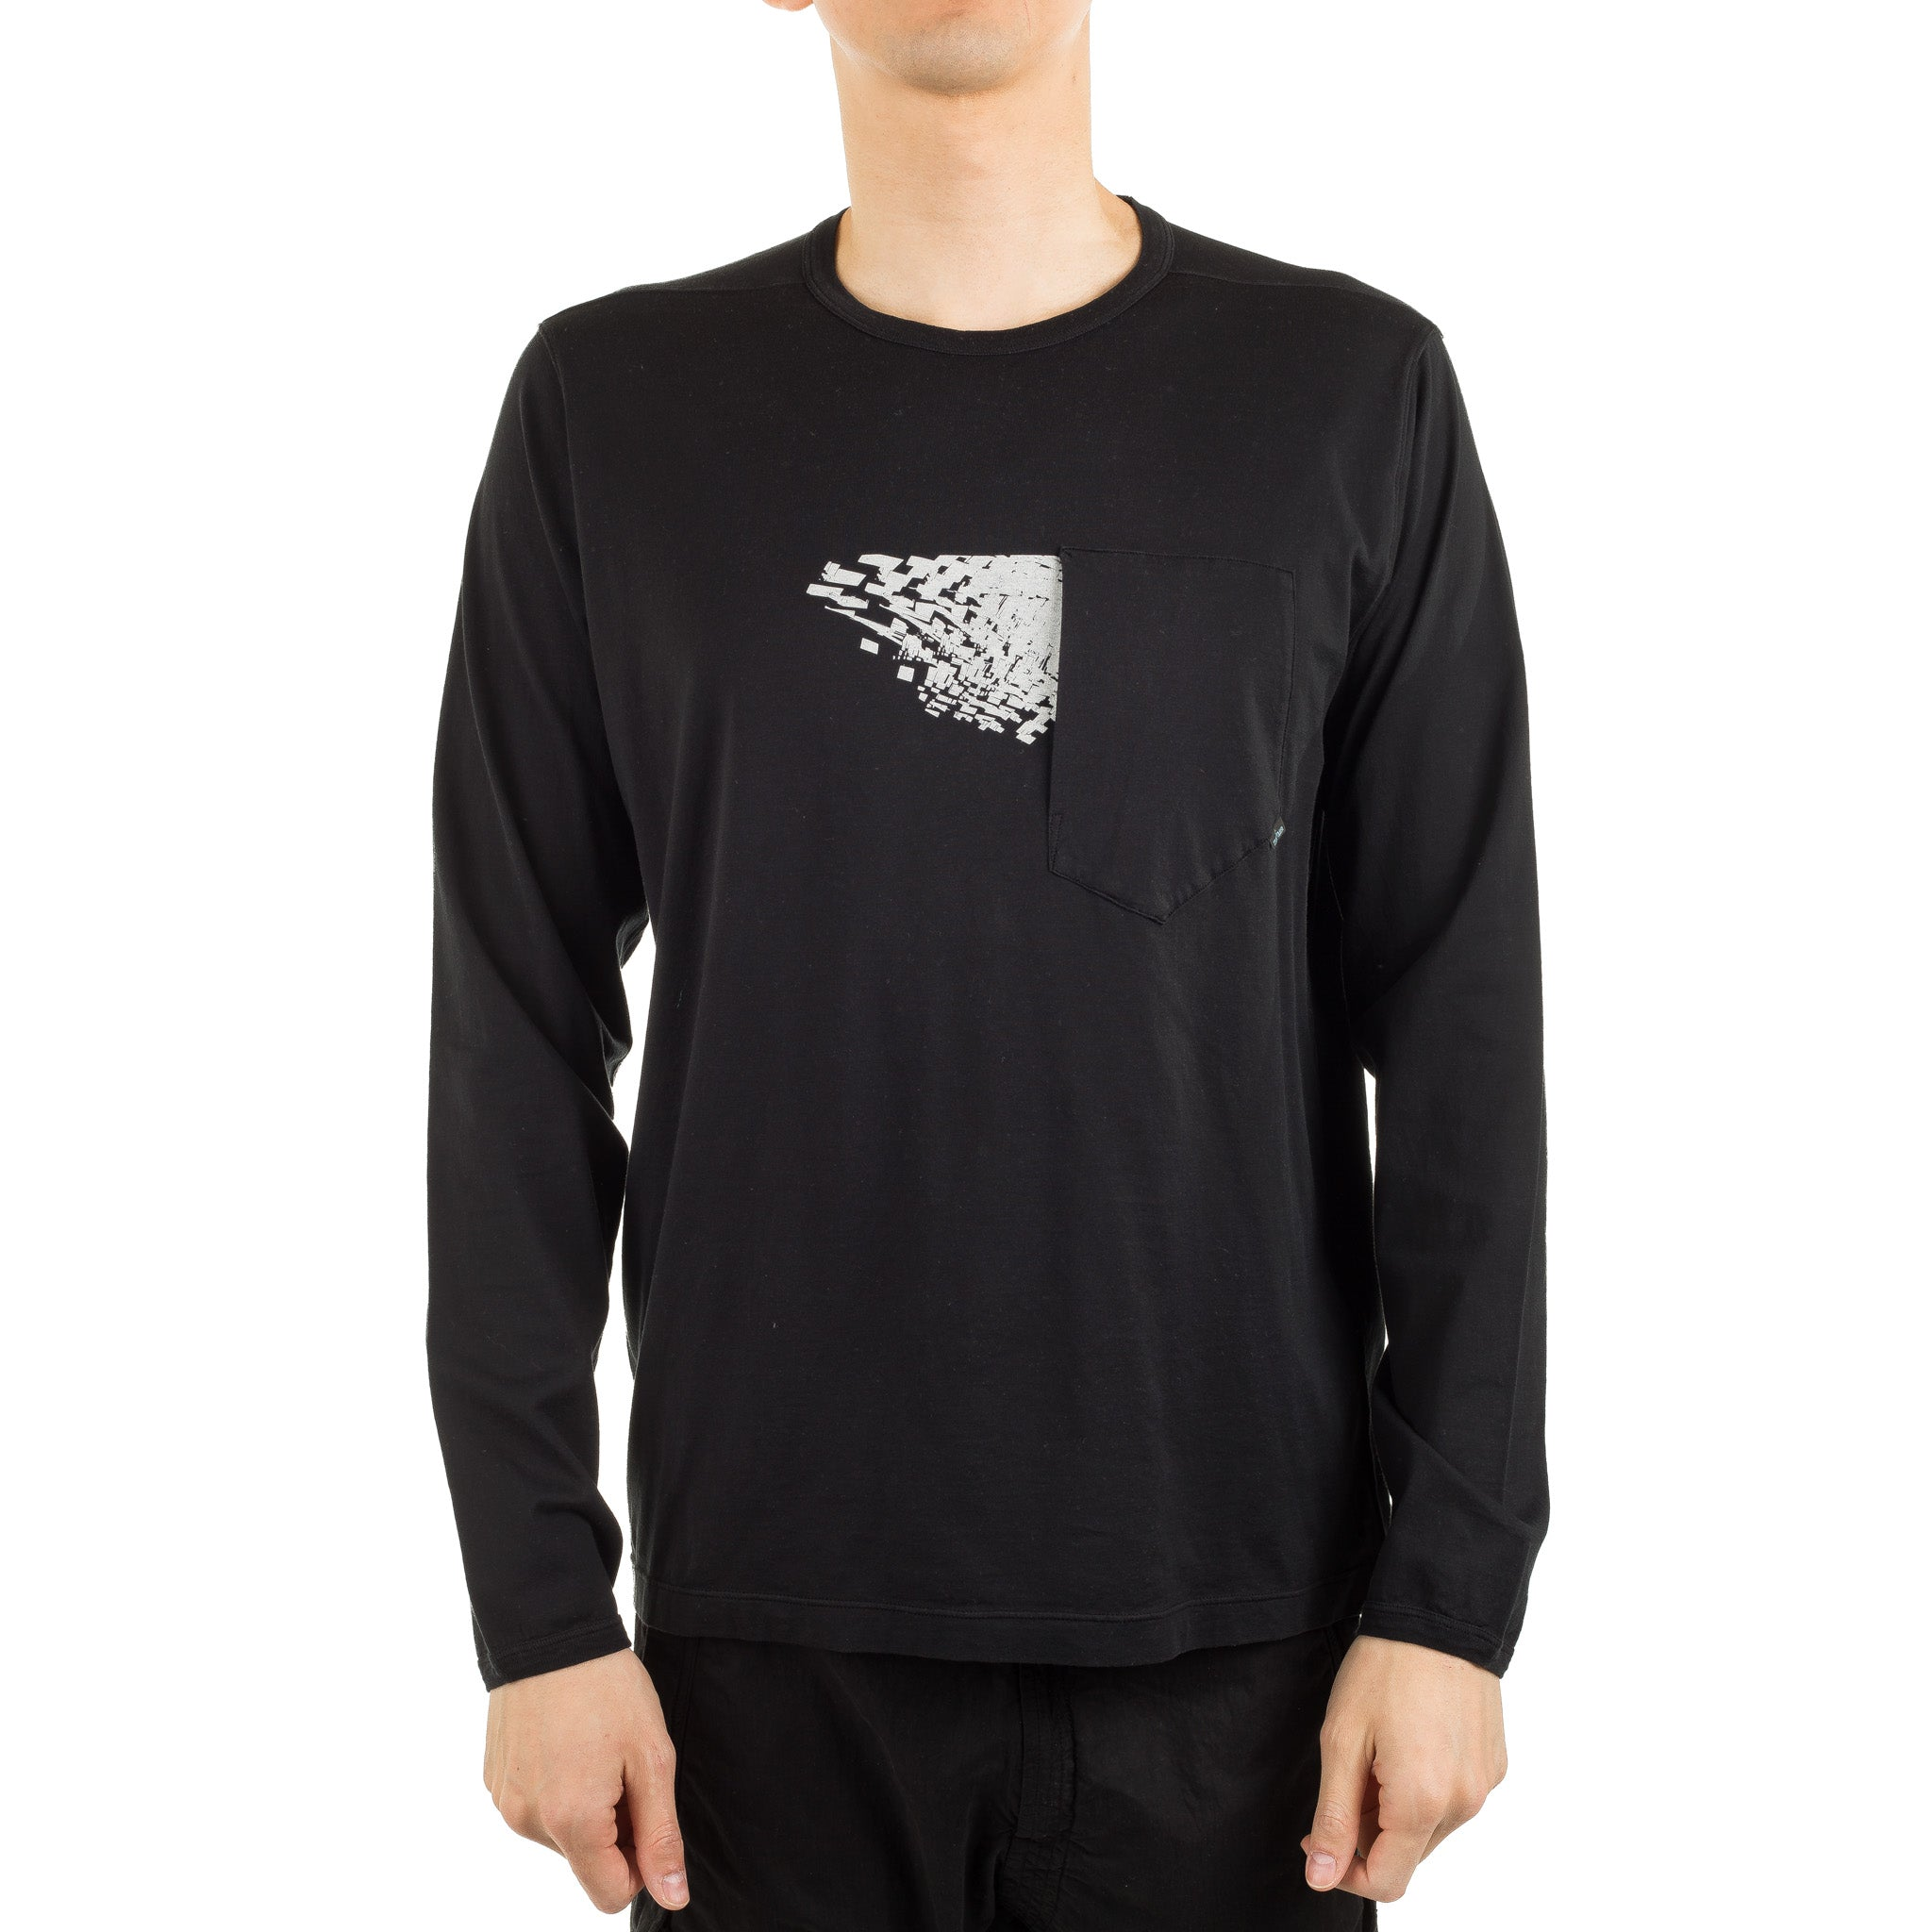 SP Long Sleeve Tee 701920214 Black